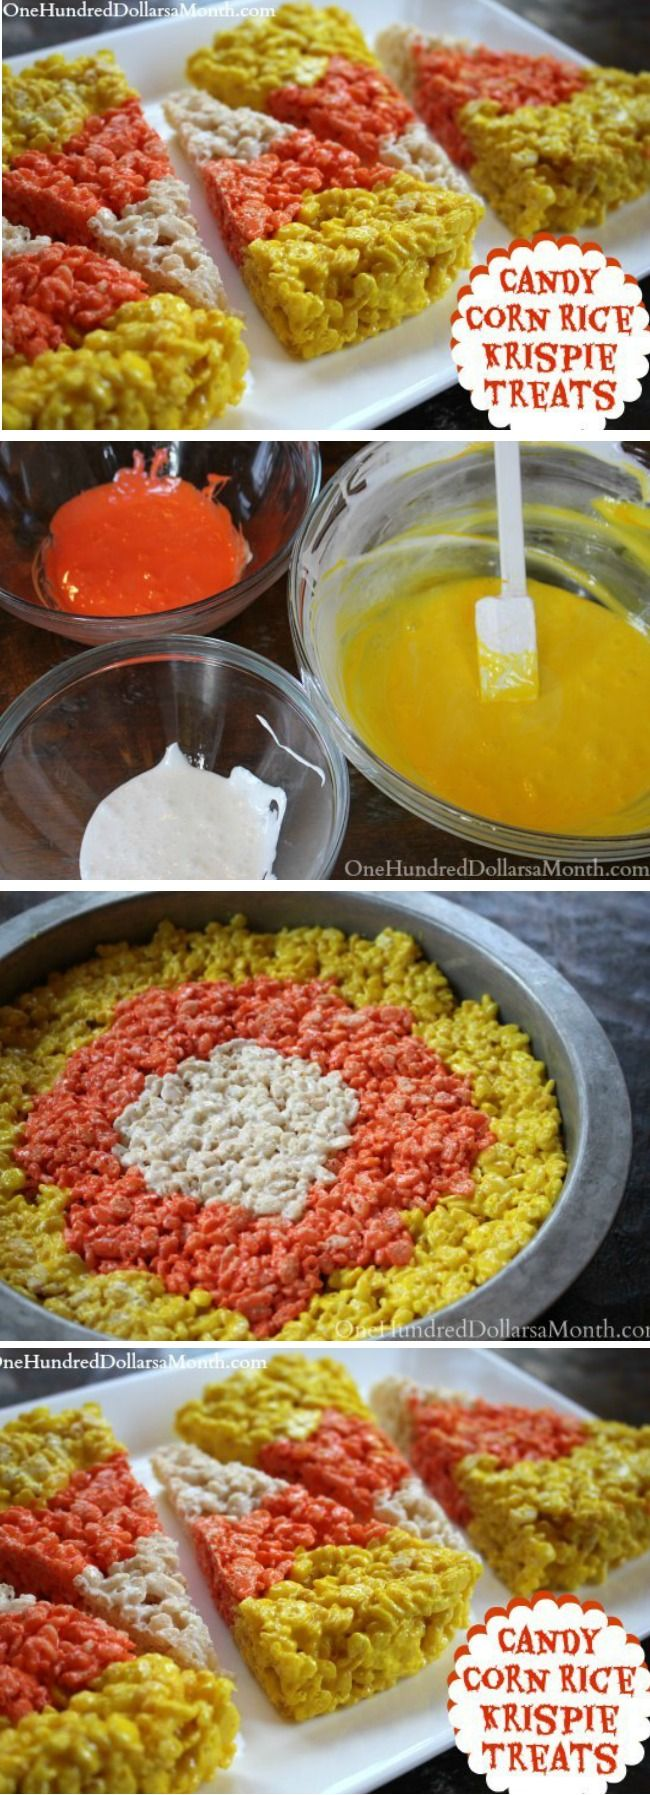 Don't you think these Candy Corn Rice Krispie Treats would make the perfect treats for a school or harvest party? Ingredients: 9 cups Rice Krispies cereal 11 ounces mini marshmallows {1 bag} 6 Tbsp butter + more for greasing the pans Yellow food coloring Orange food coloring Directions: Start by buttering {2} 8″ round cake …